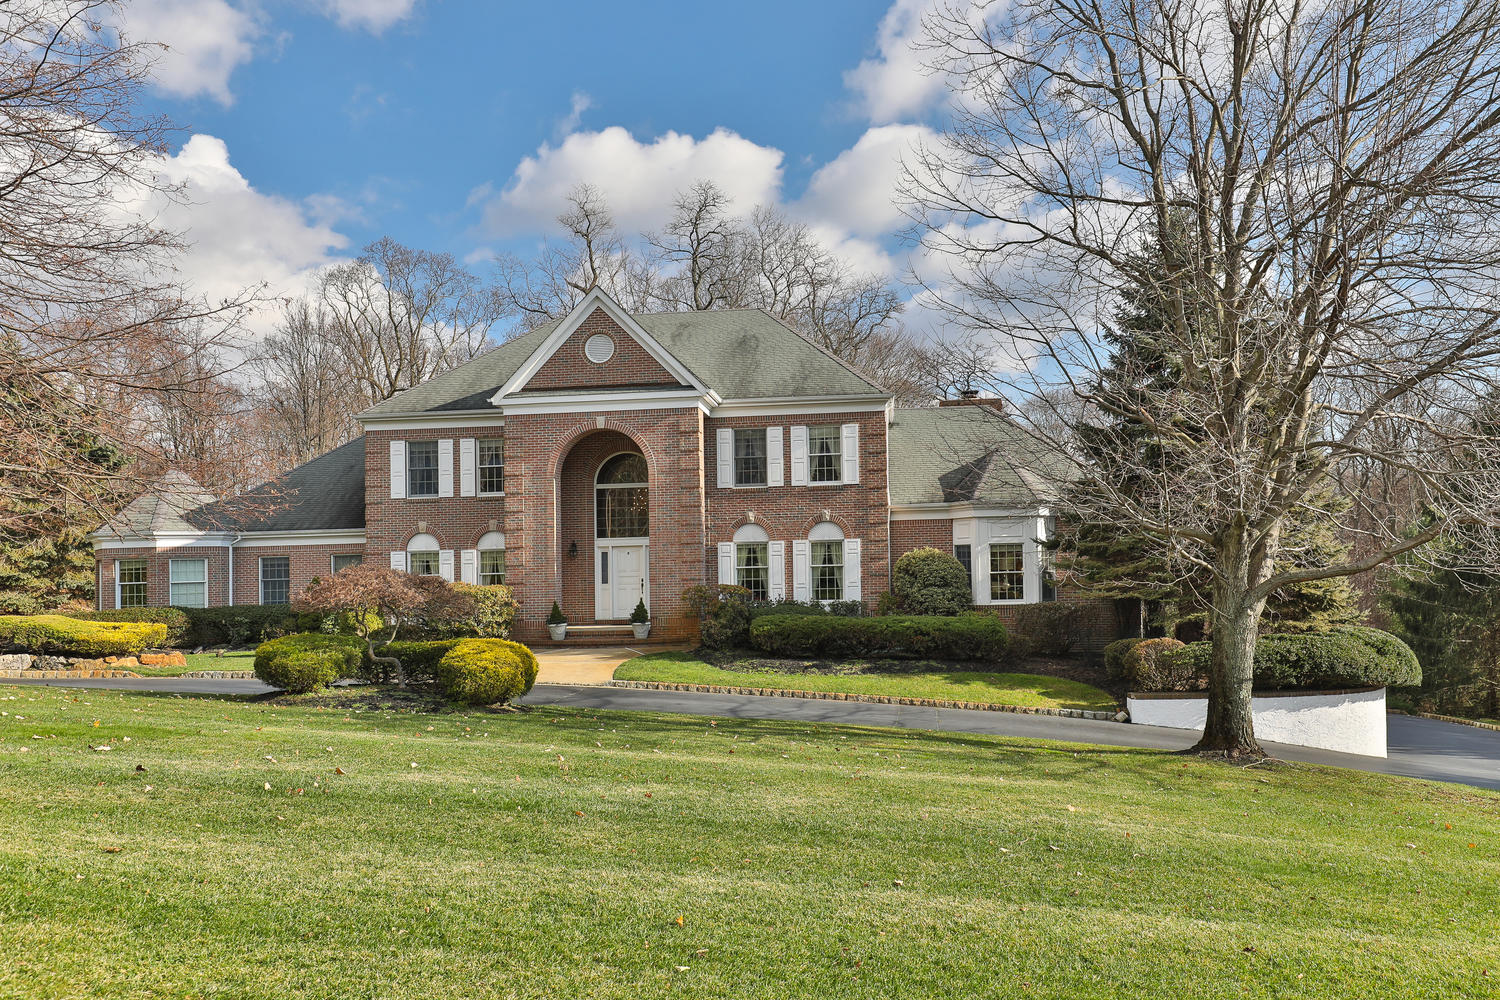 Single Family Home for Sale at Elegant Custom Colonial 3 Concord Court Colts Neck, New Jersey 07722 United States